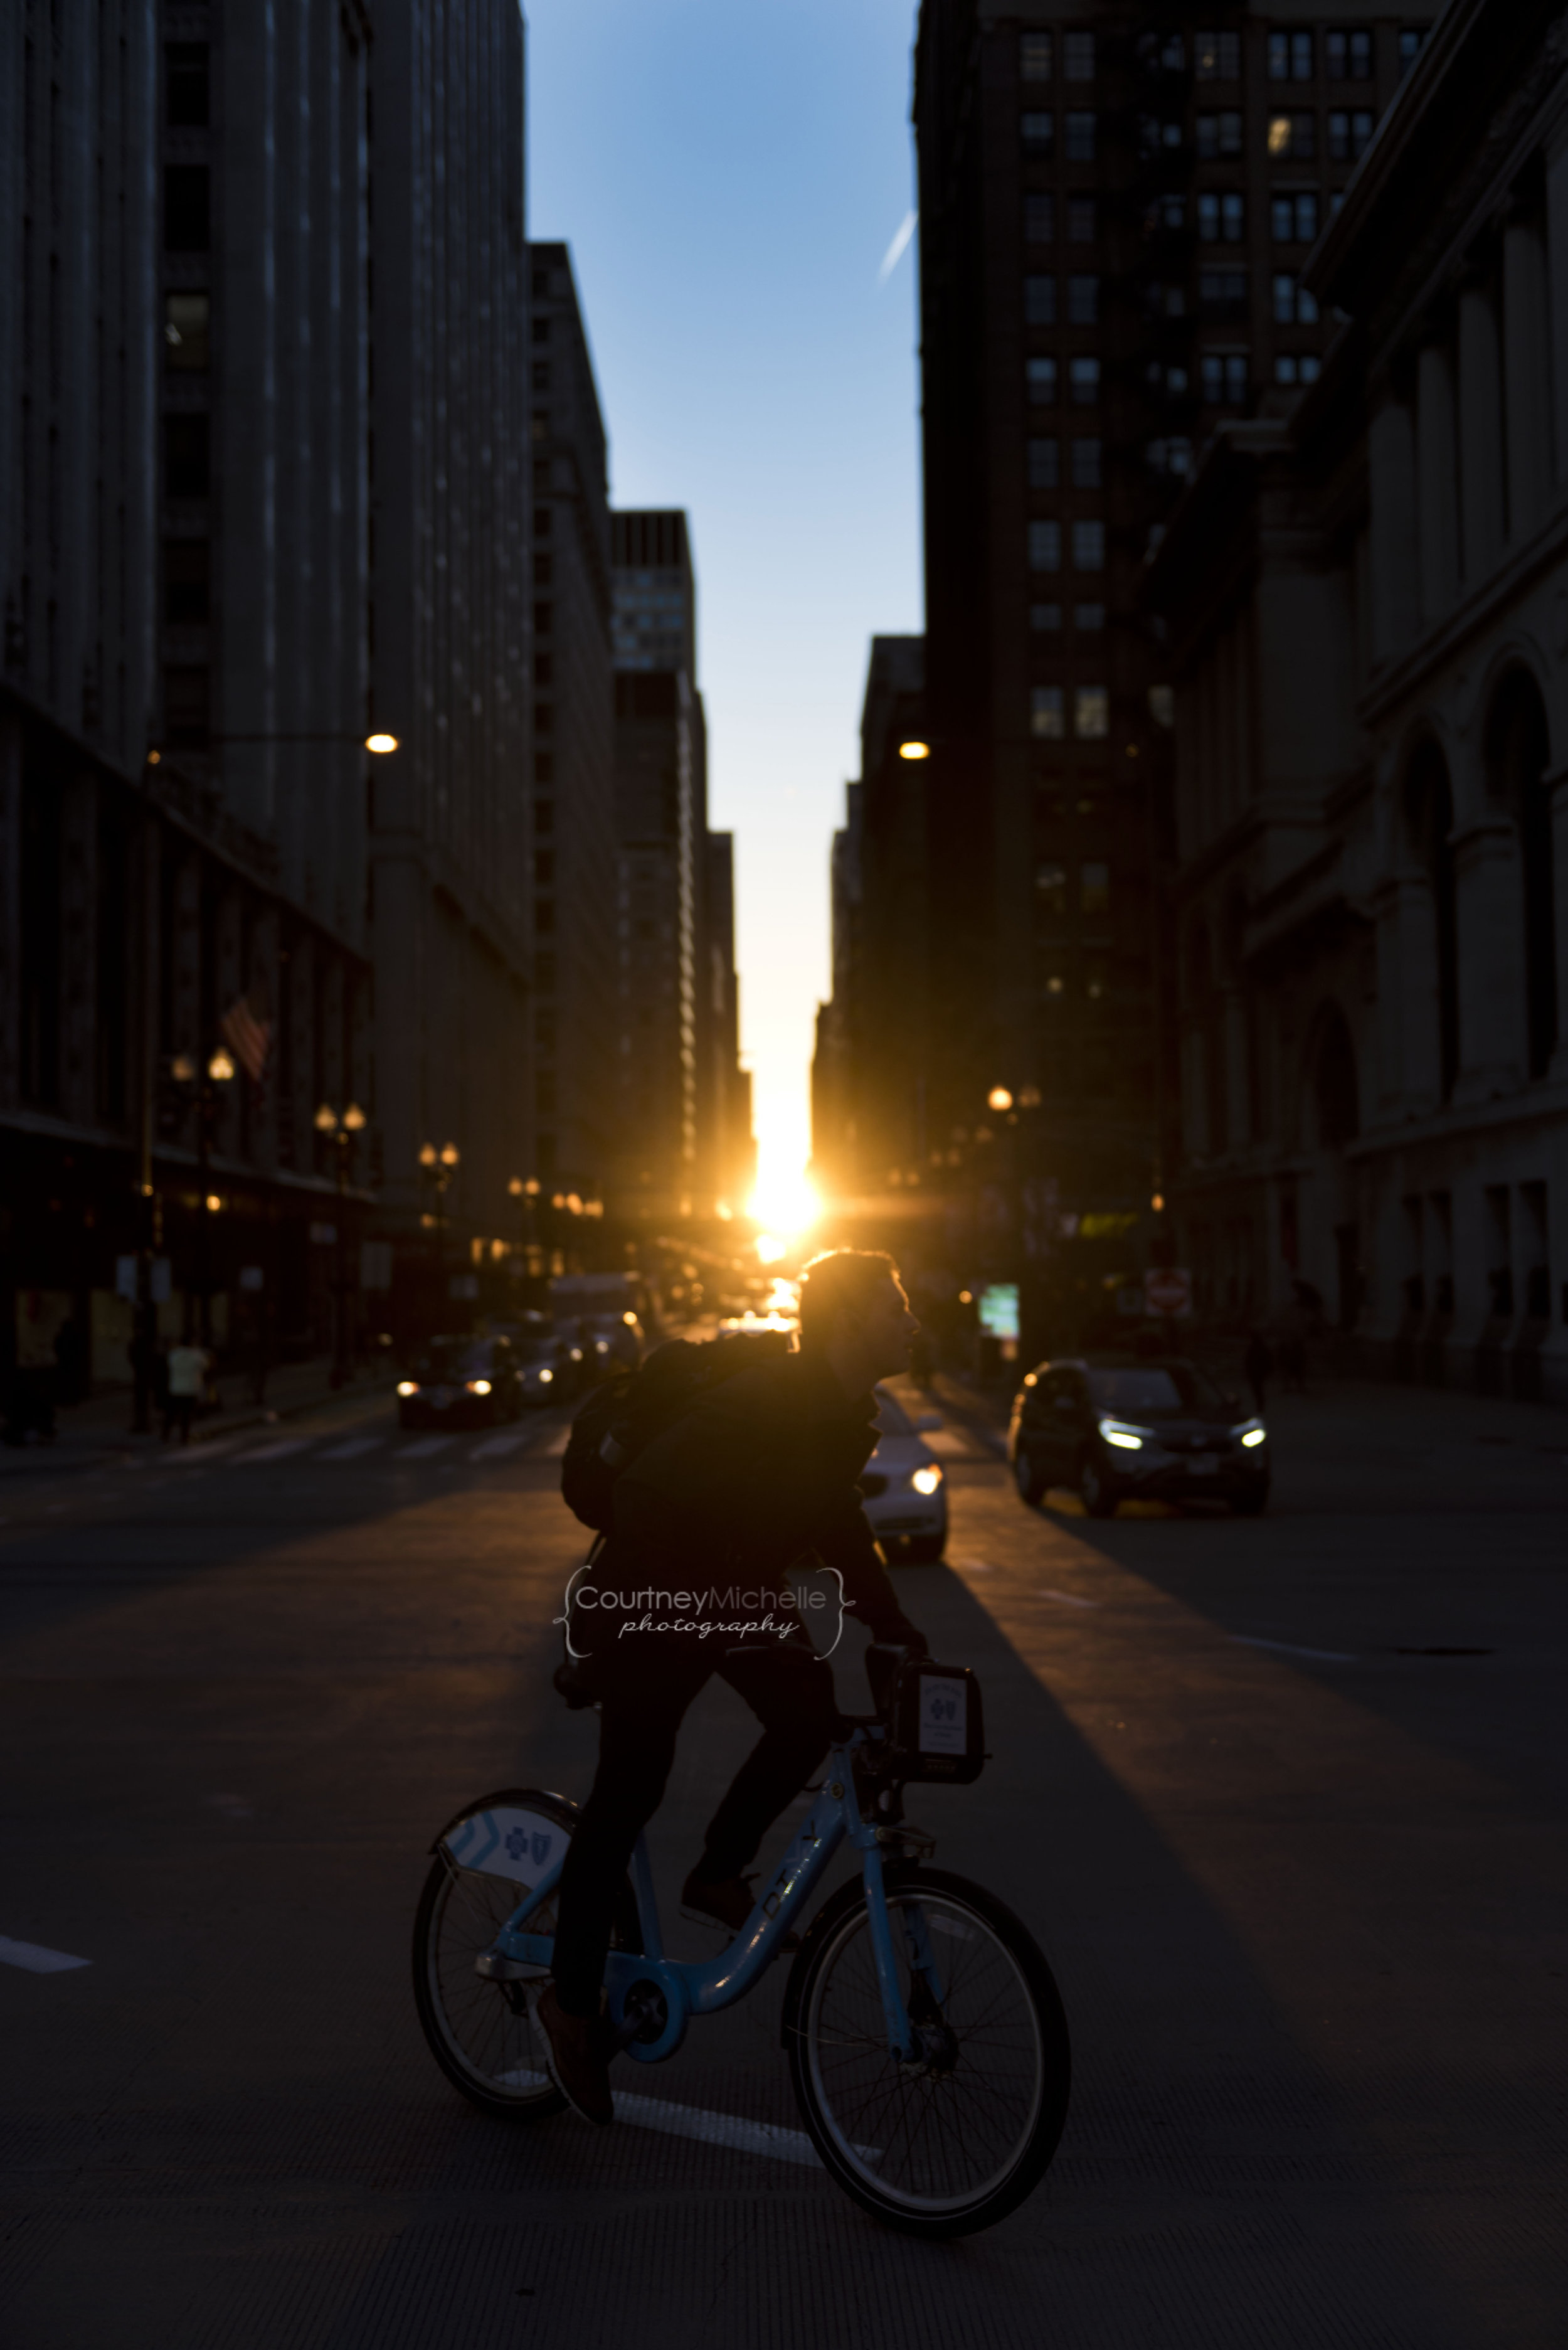 chicagohenge2019-millenium-park-courtney-laper-chicago-photographer©CopyrightCMP_2019chicagohenge-3022.jpg